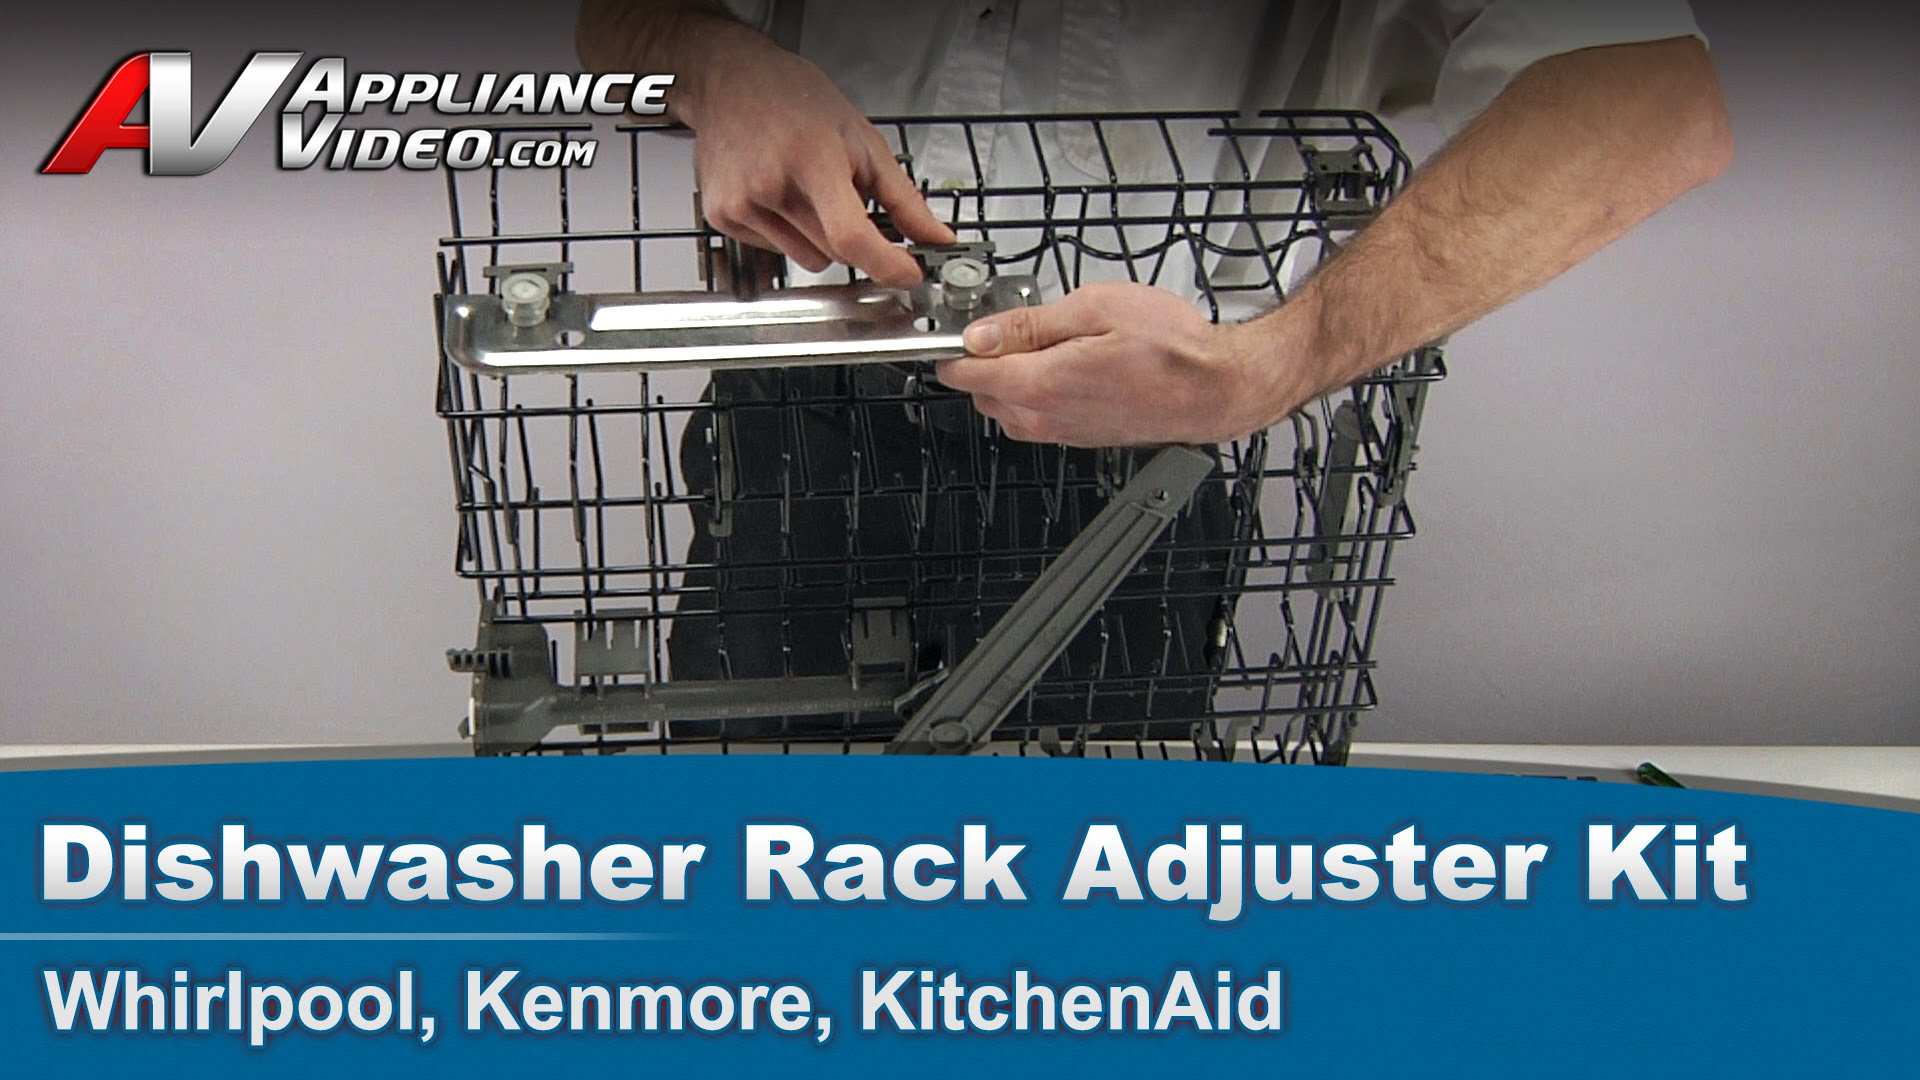 Whirlpool Kenmore KitchenAid Dishwasher Rack Adjustment Kit V Rail Vrack Appliance Video